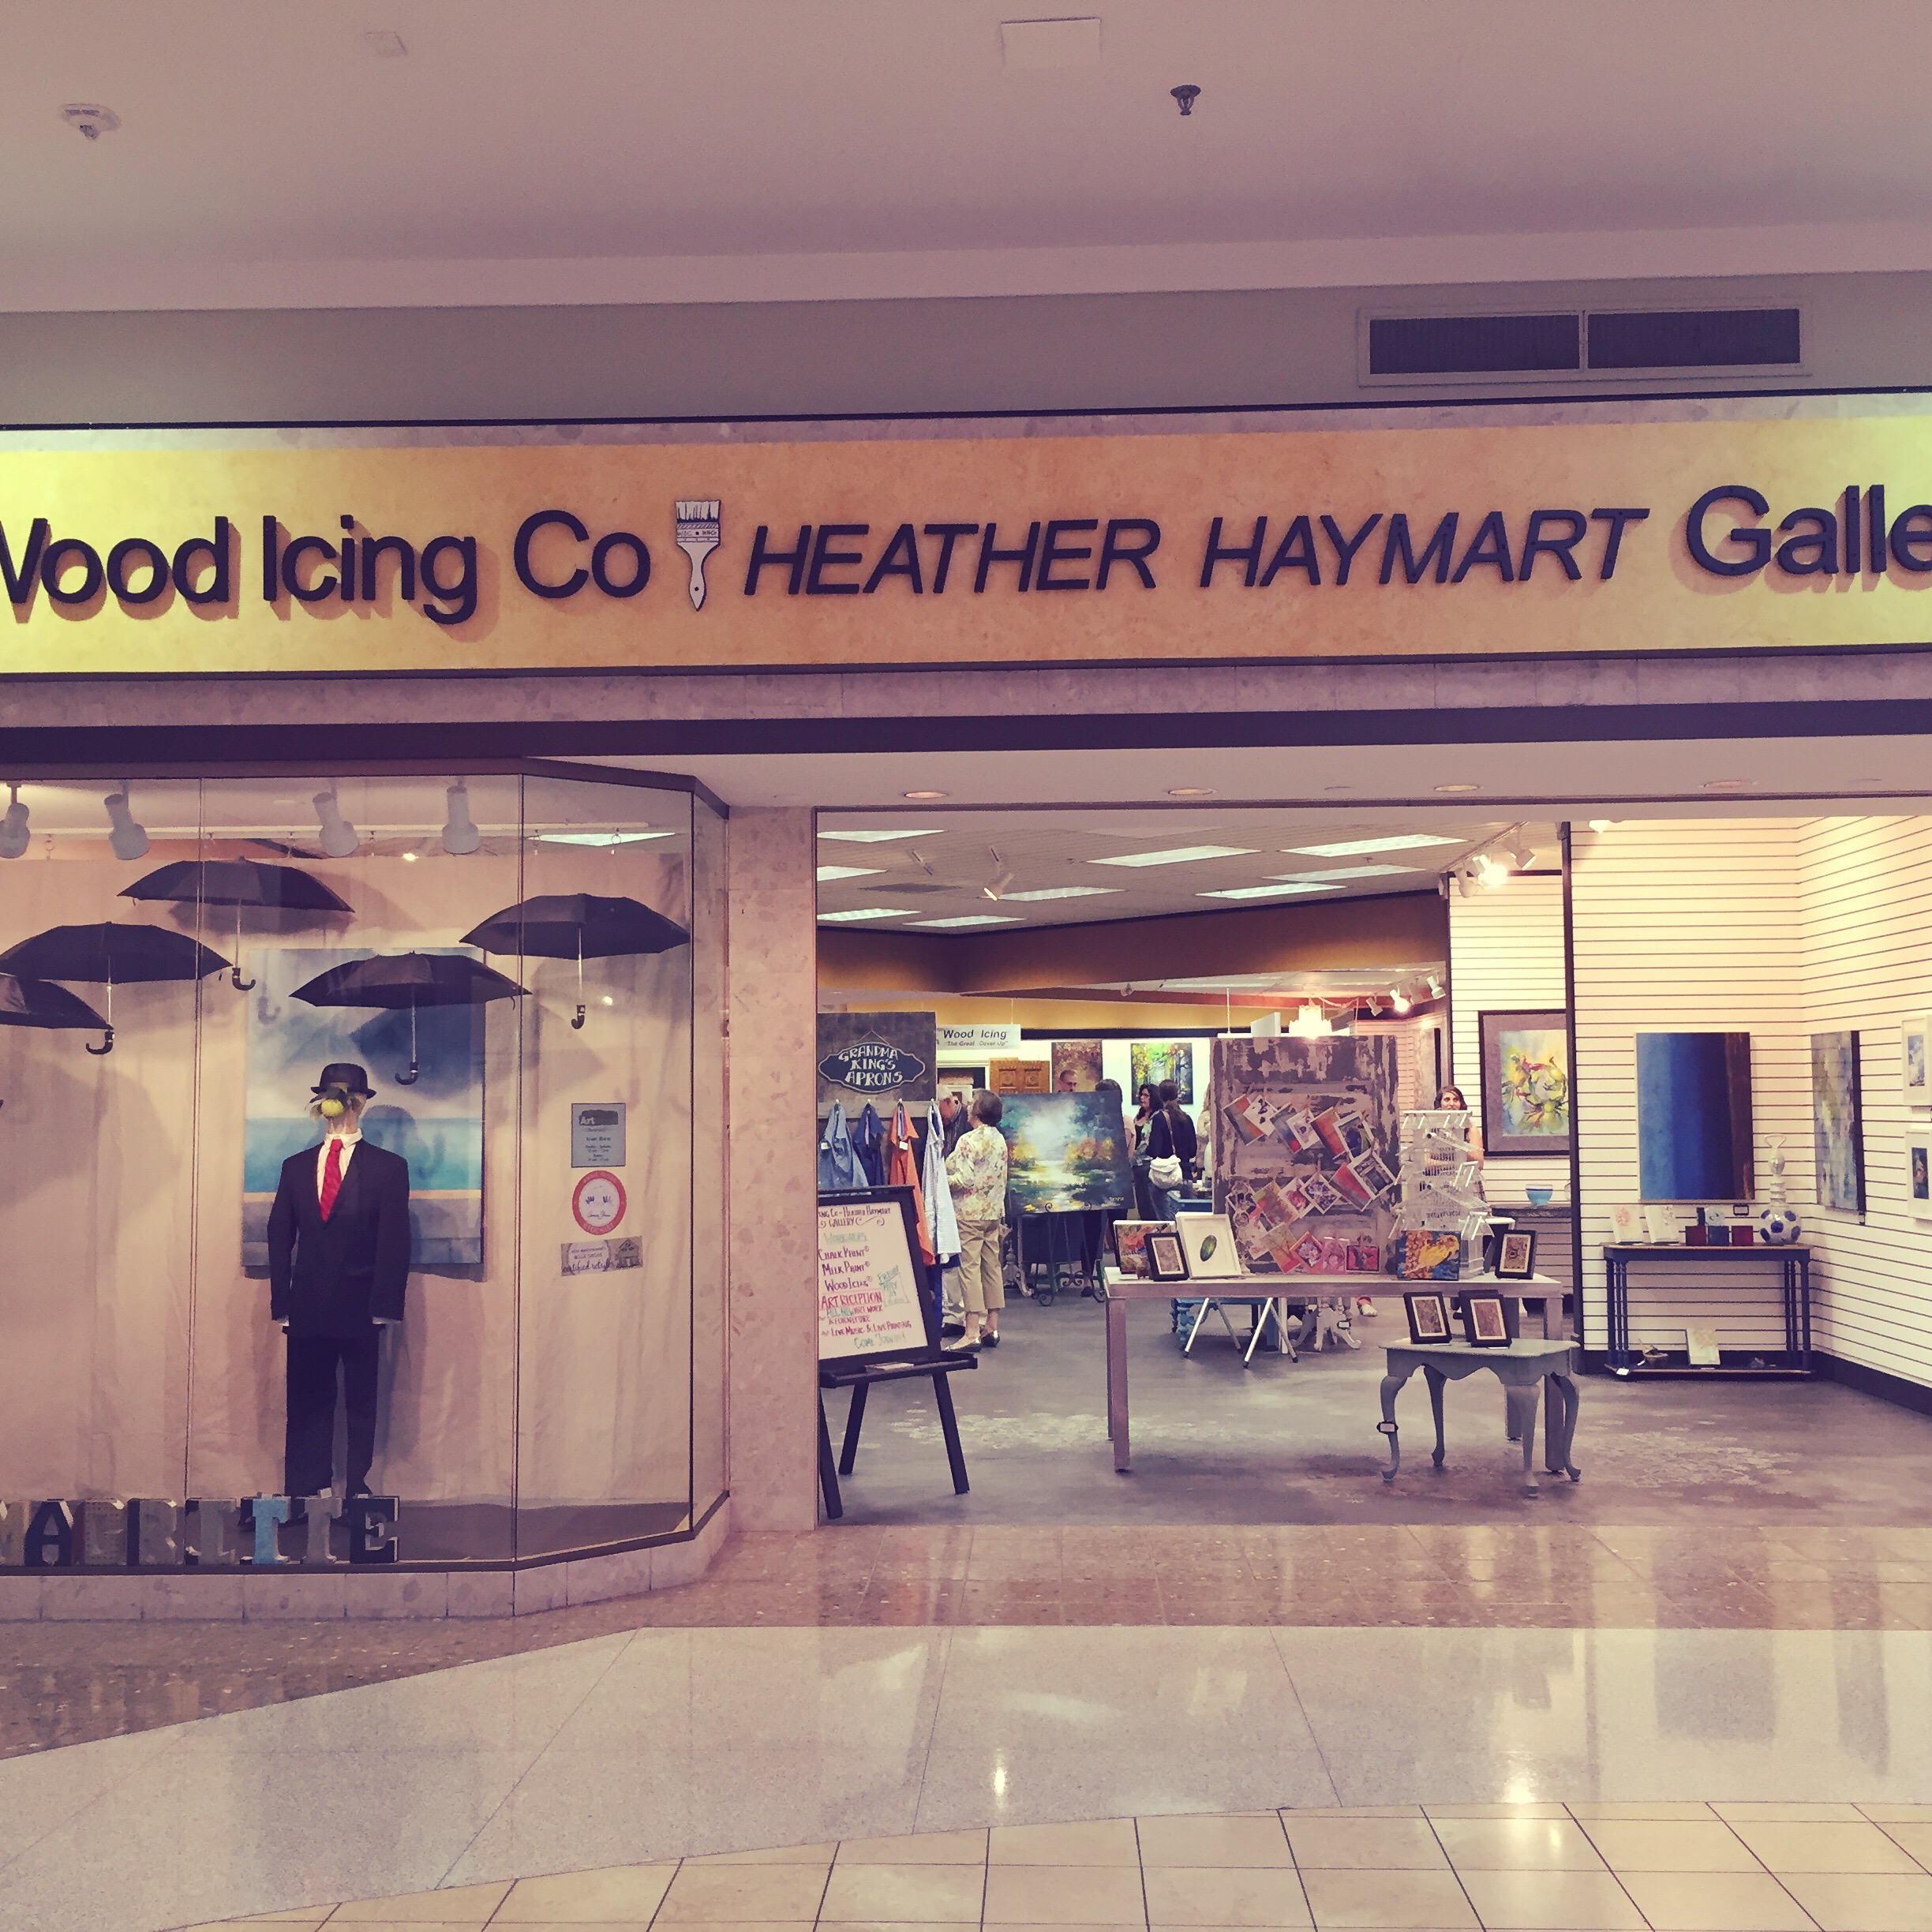 Heather Haymart Gallery